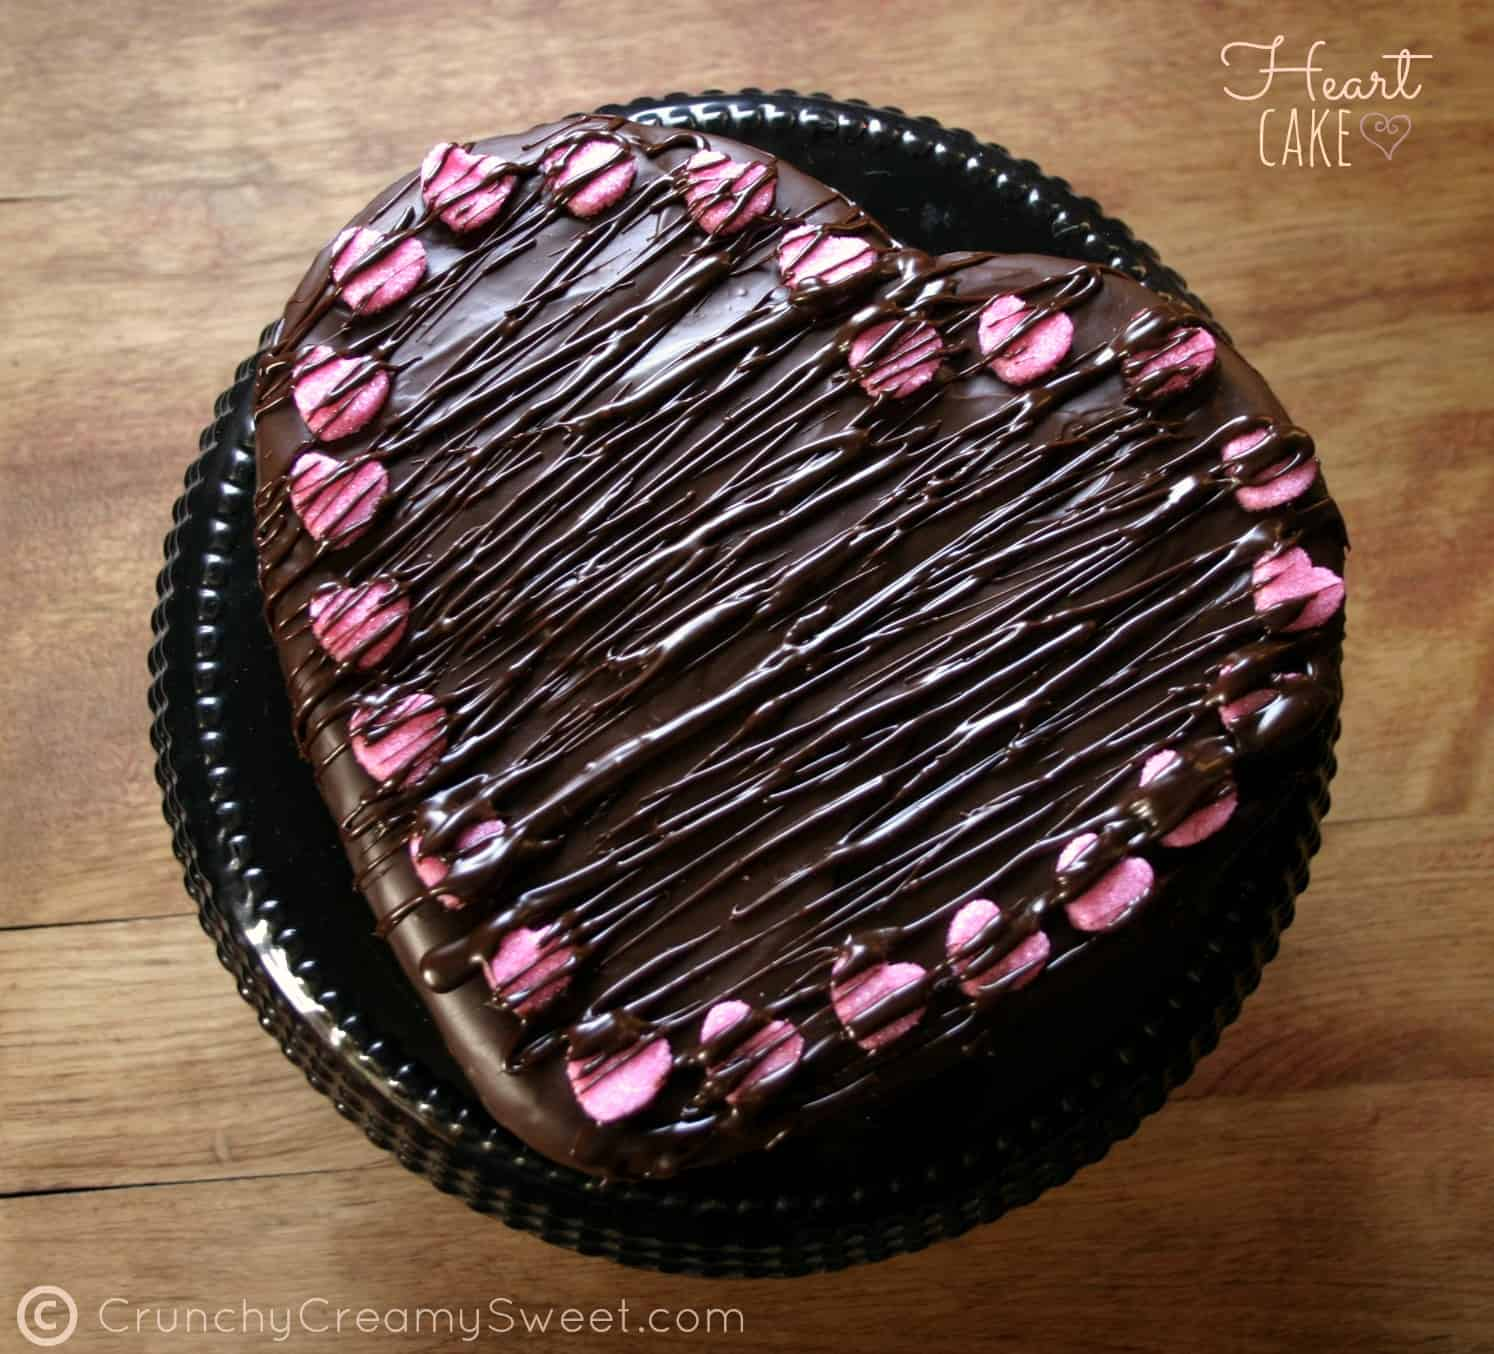 heart cake 1 Chocolate Ganache Heart Cake